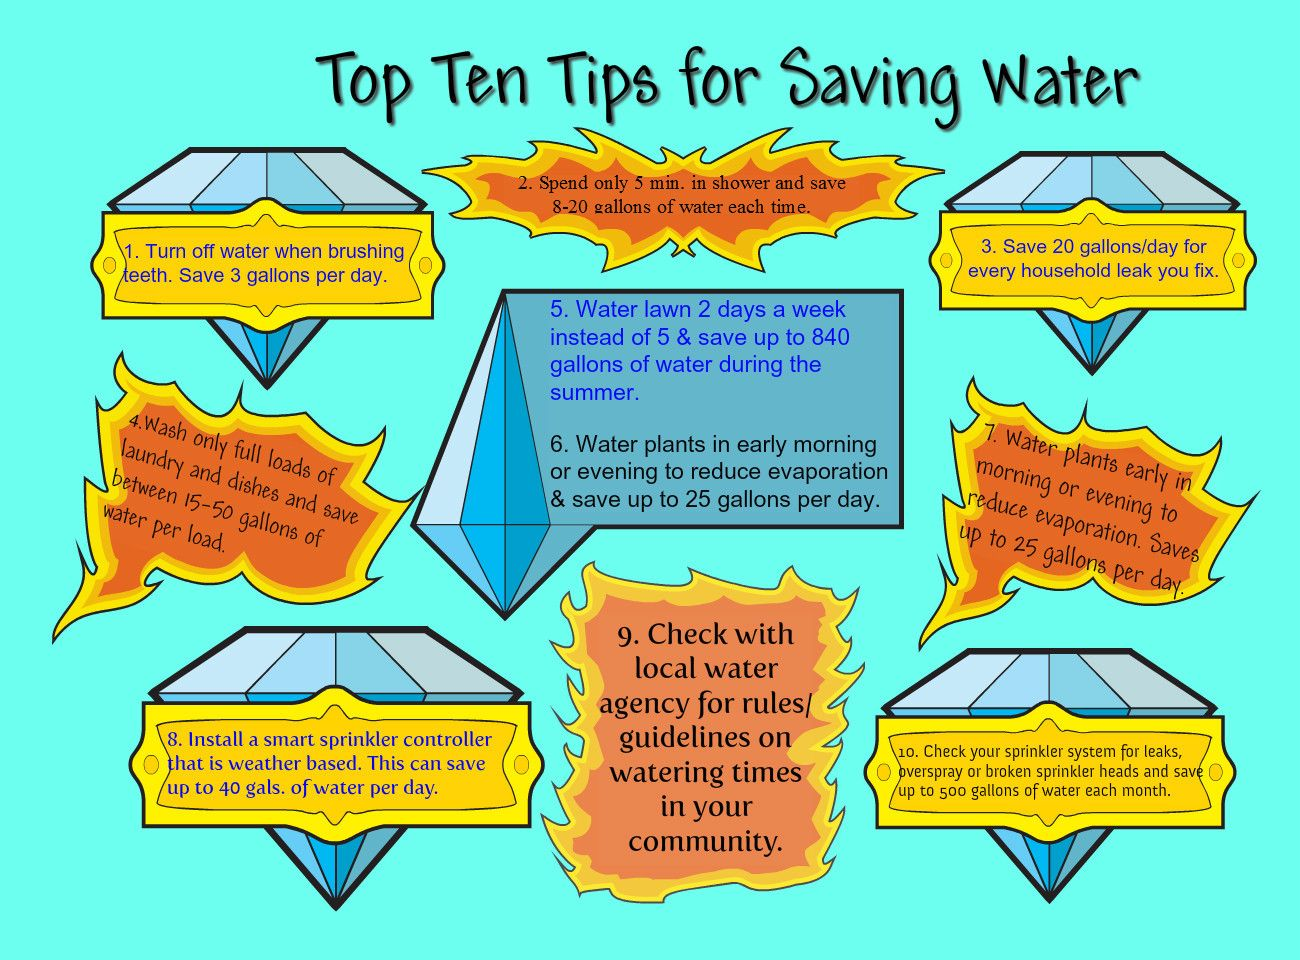 Water conservation tips top ten tips for saving water by for What is the best way to save for a house